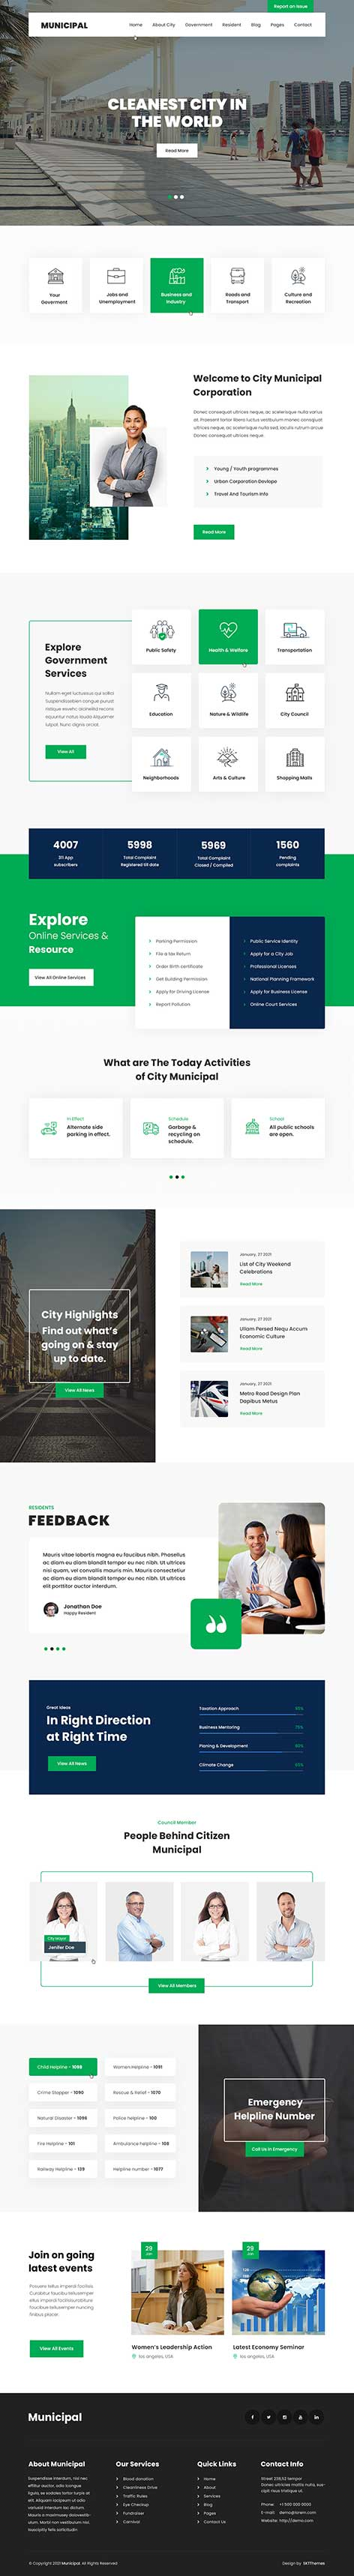 City Government WordPress theme